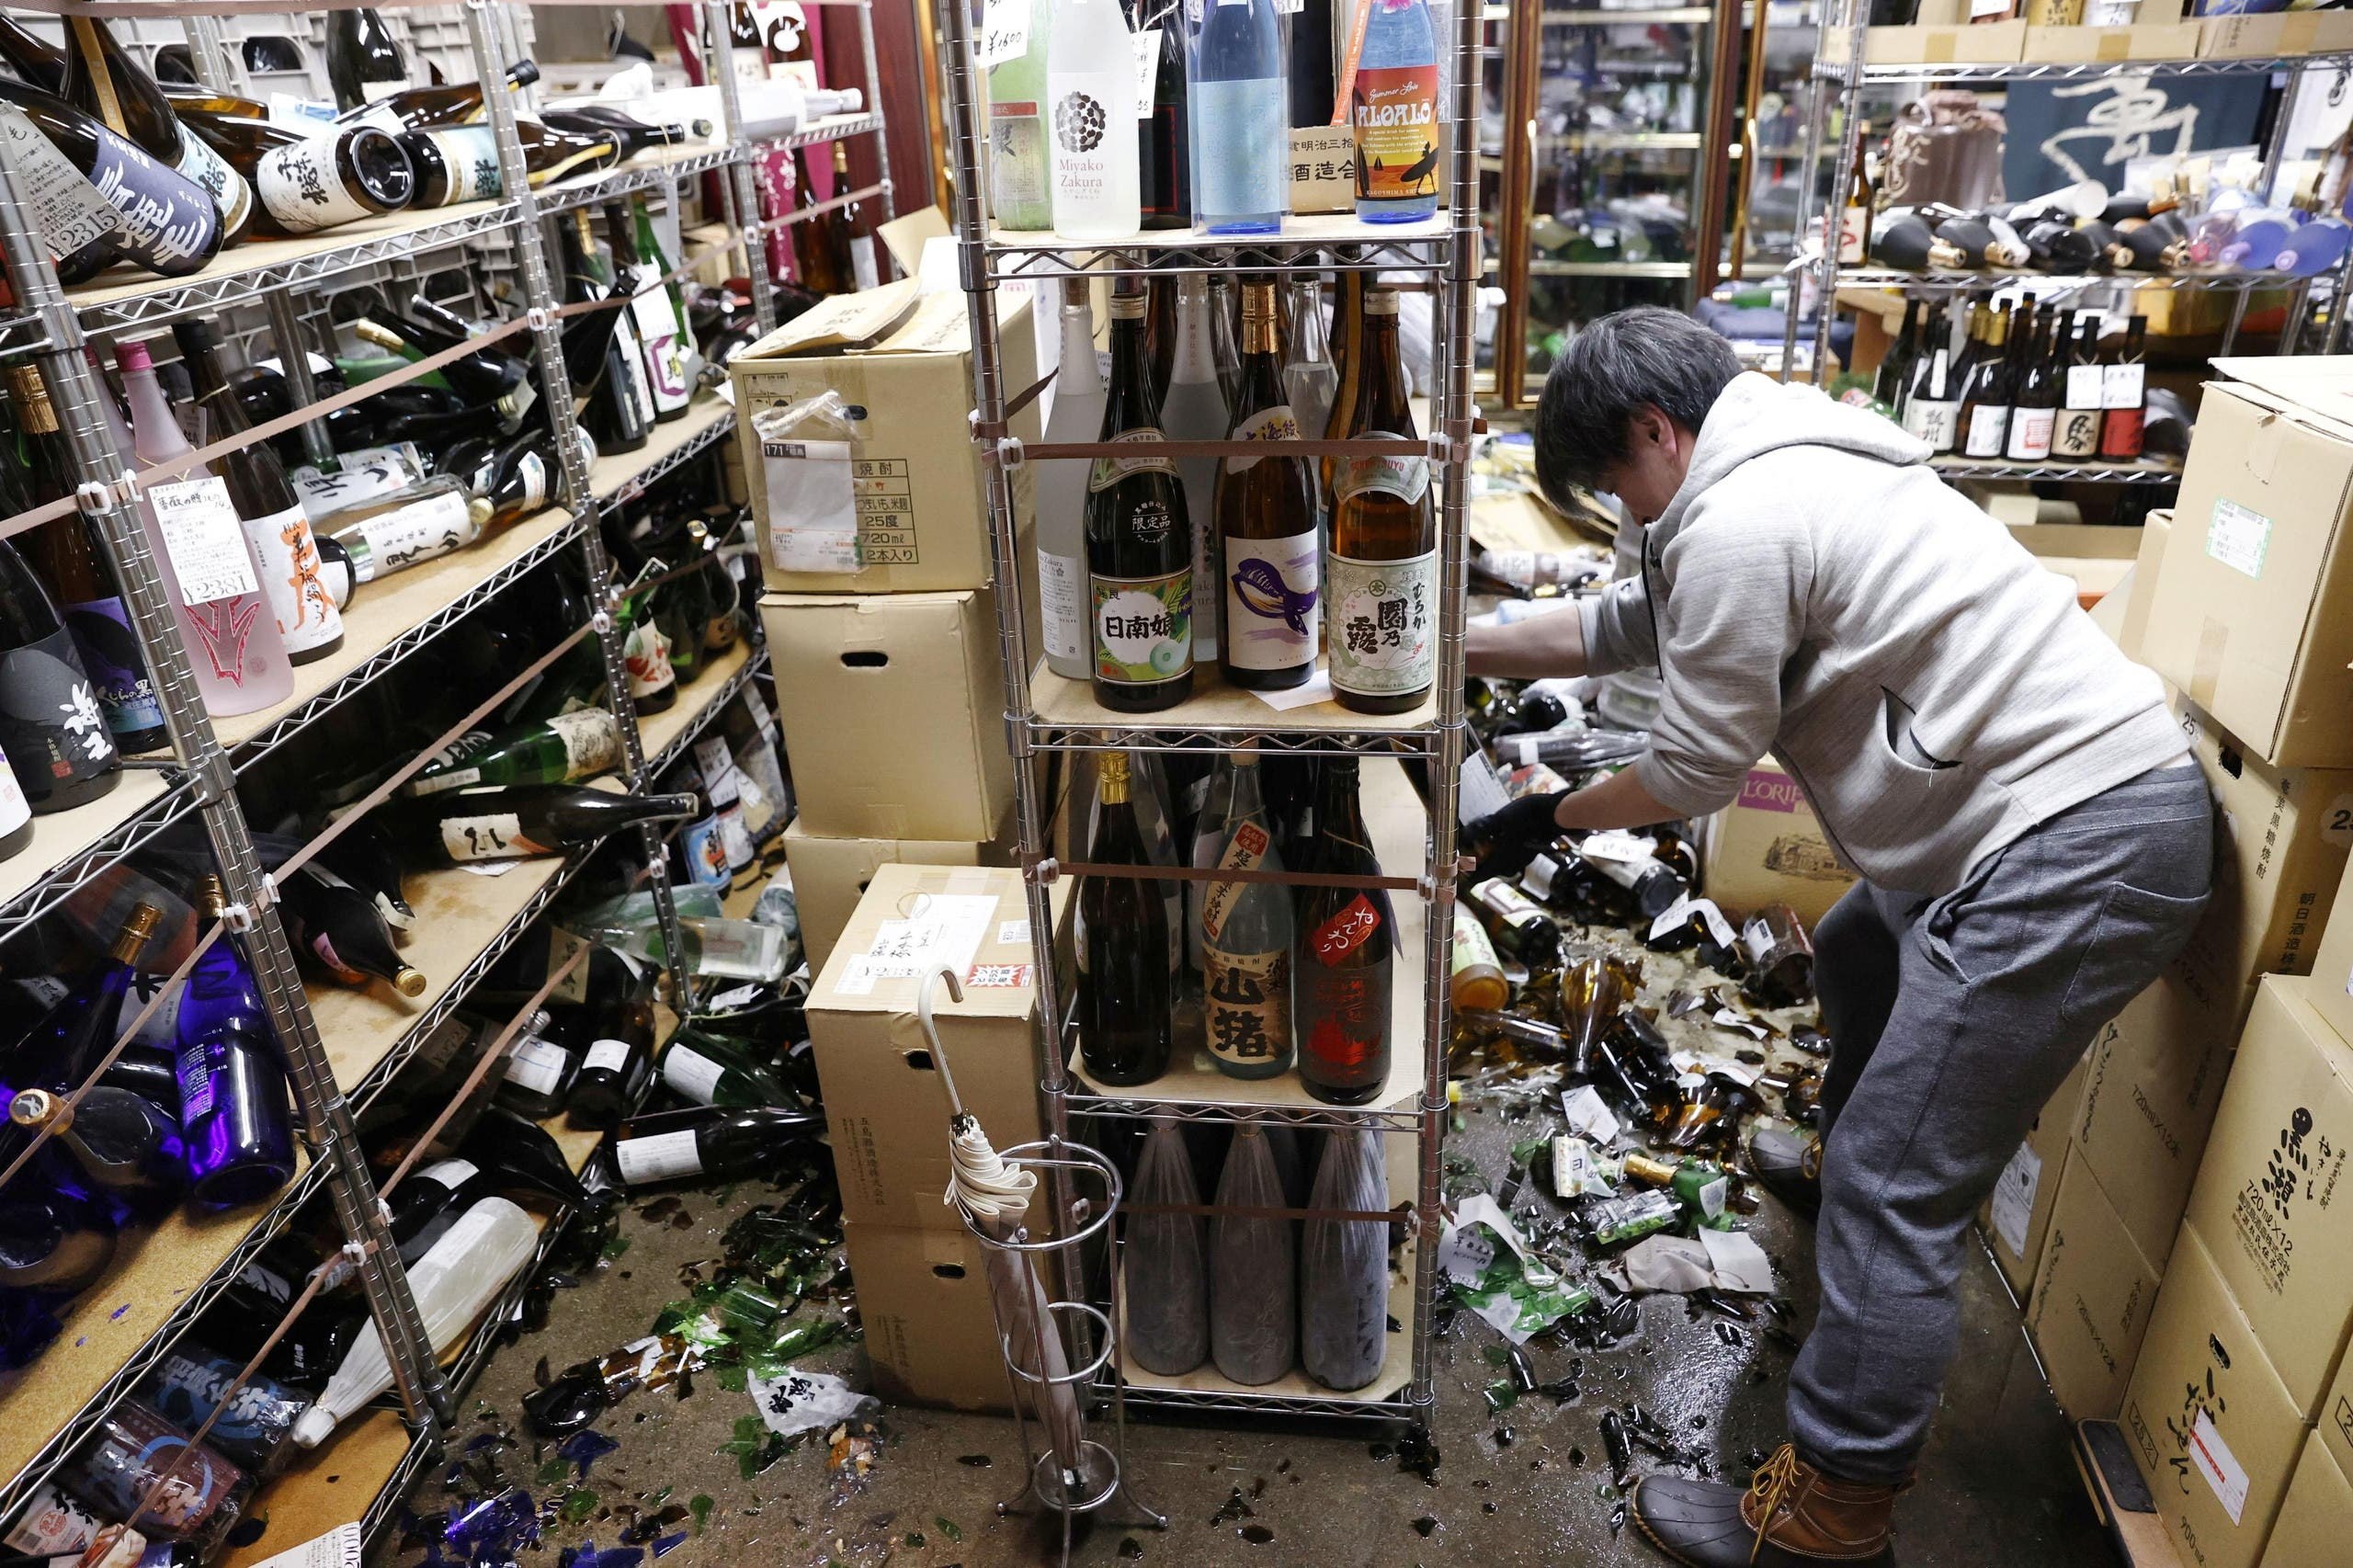 A worker cleans up broken bottles at a liquor shop after a strong quake in Fukushima, Japan, February 13, 2021, in this photo taken by Kyodo. (Kyodo/via Reuters)